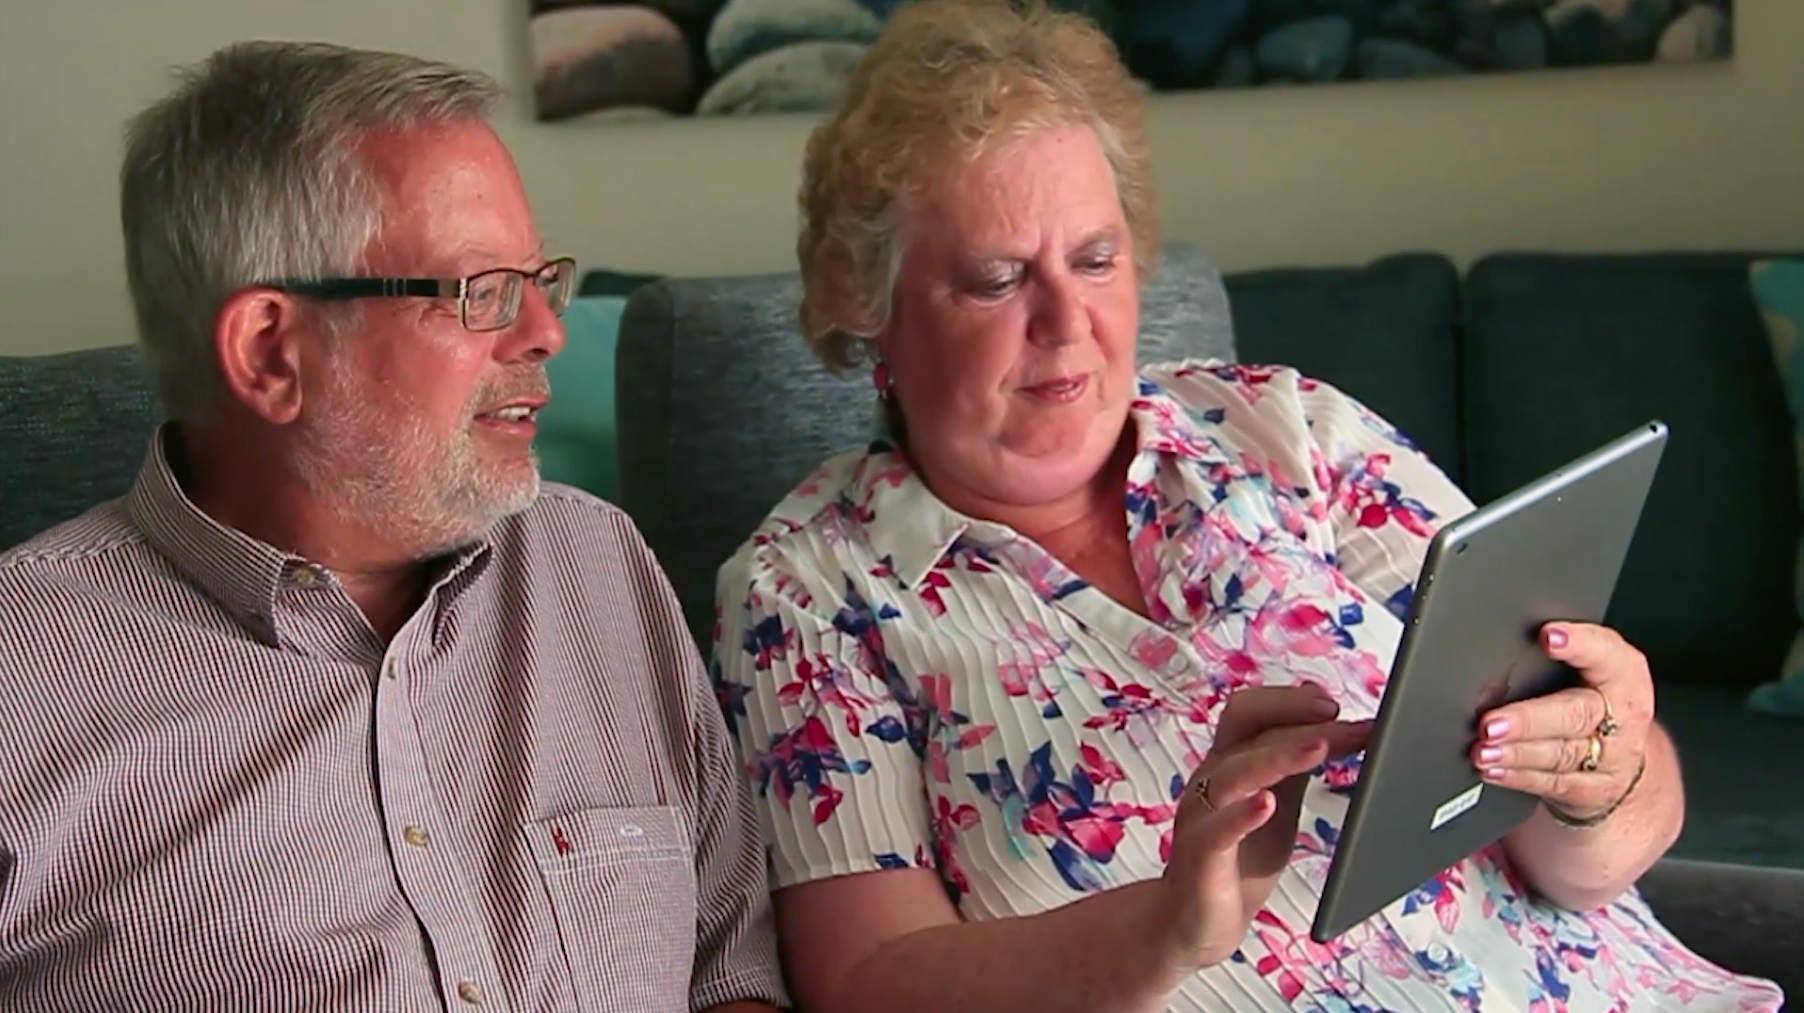 Martin and Gail use RCI.com to book all their holidays as they find it simple and easy to use. Though, if they ever have any issues or questions, the call centre is always on hand to help.